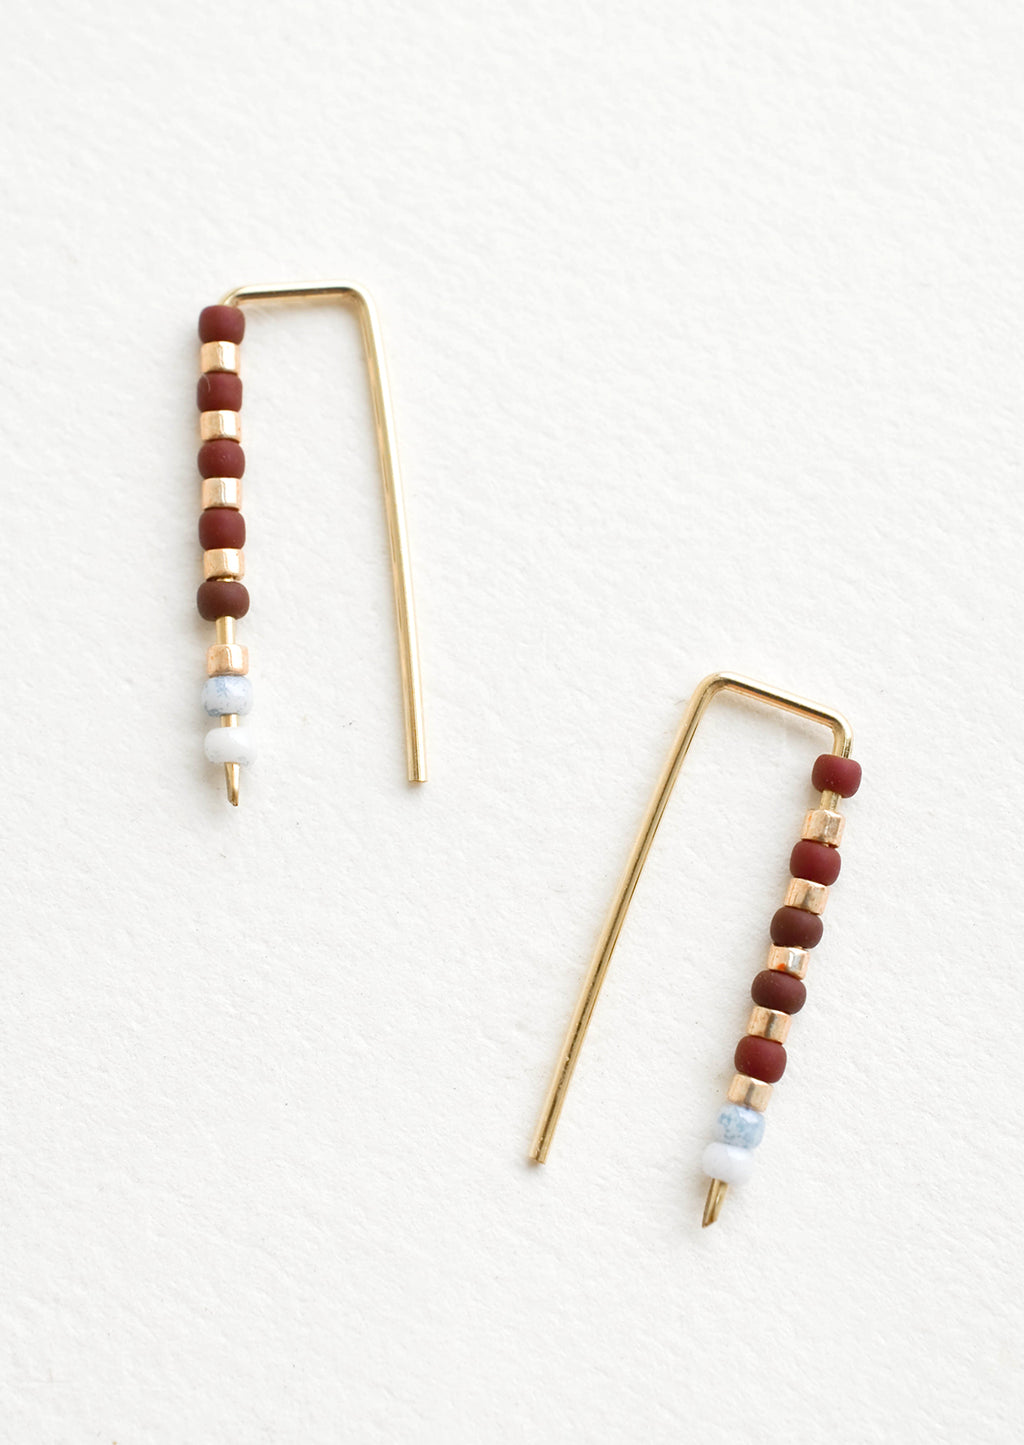 Merlot / Grey: Staple shaped earrings in gold metal with stacked glass seed beads on one side in a mix of colors